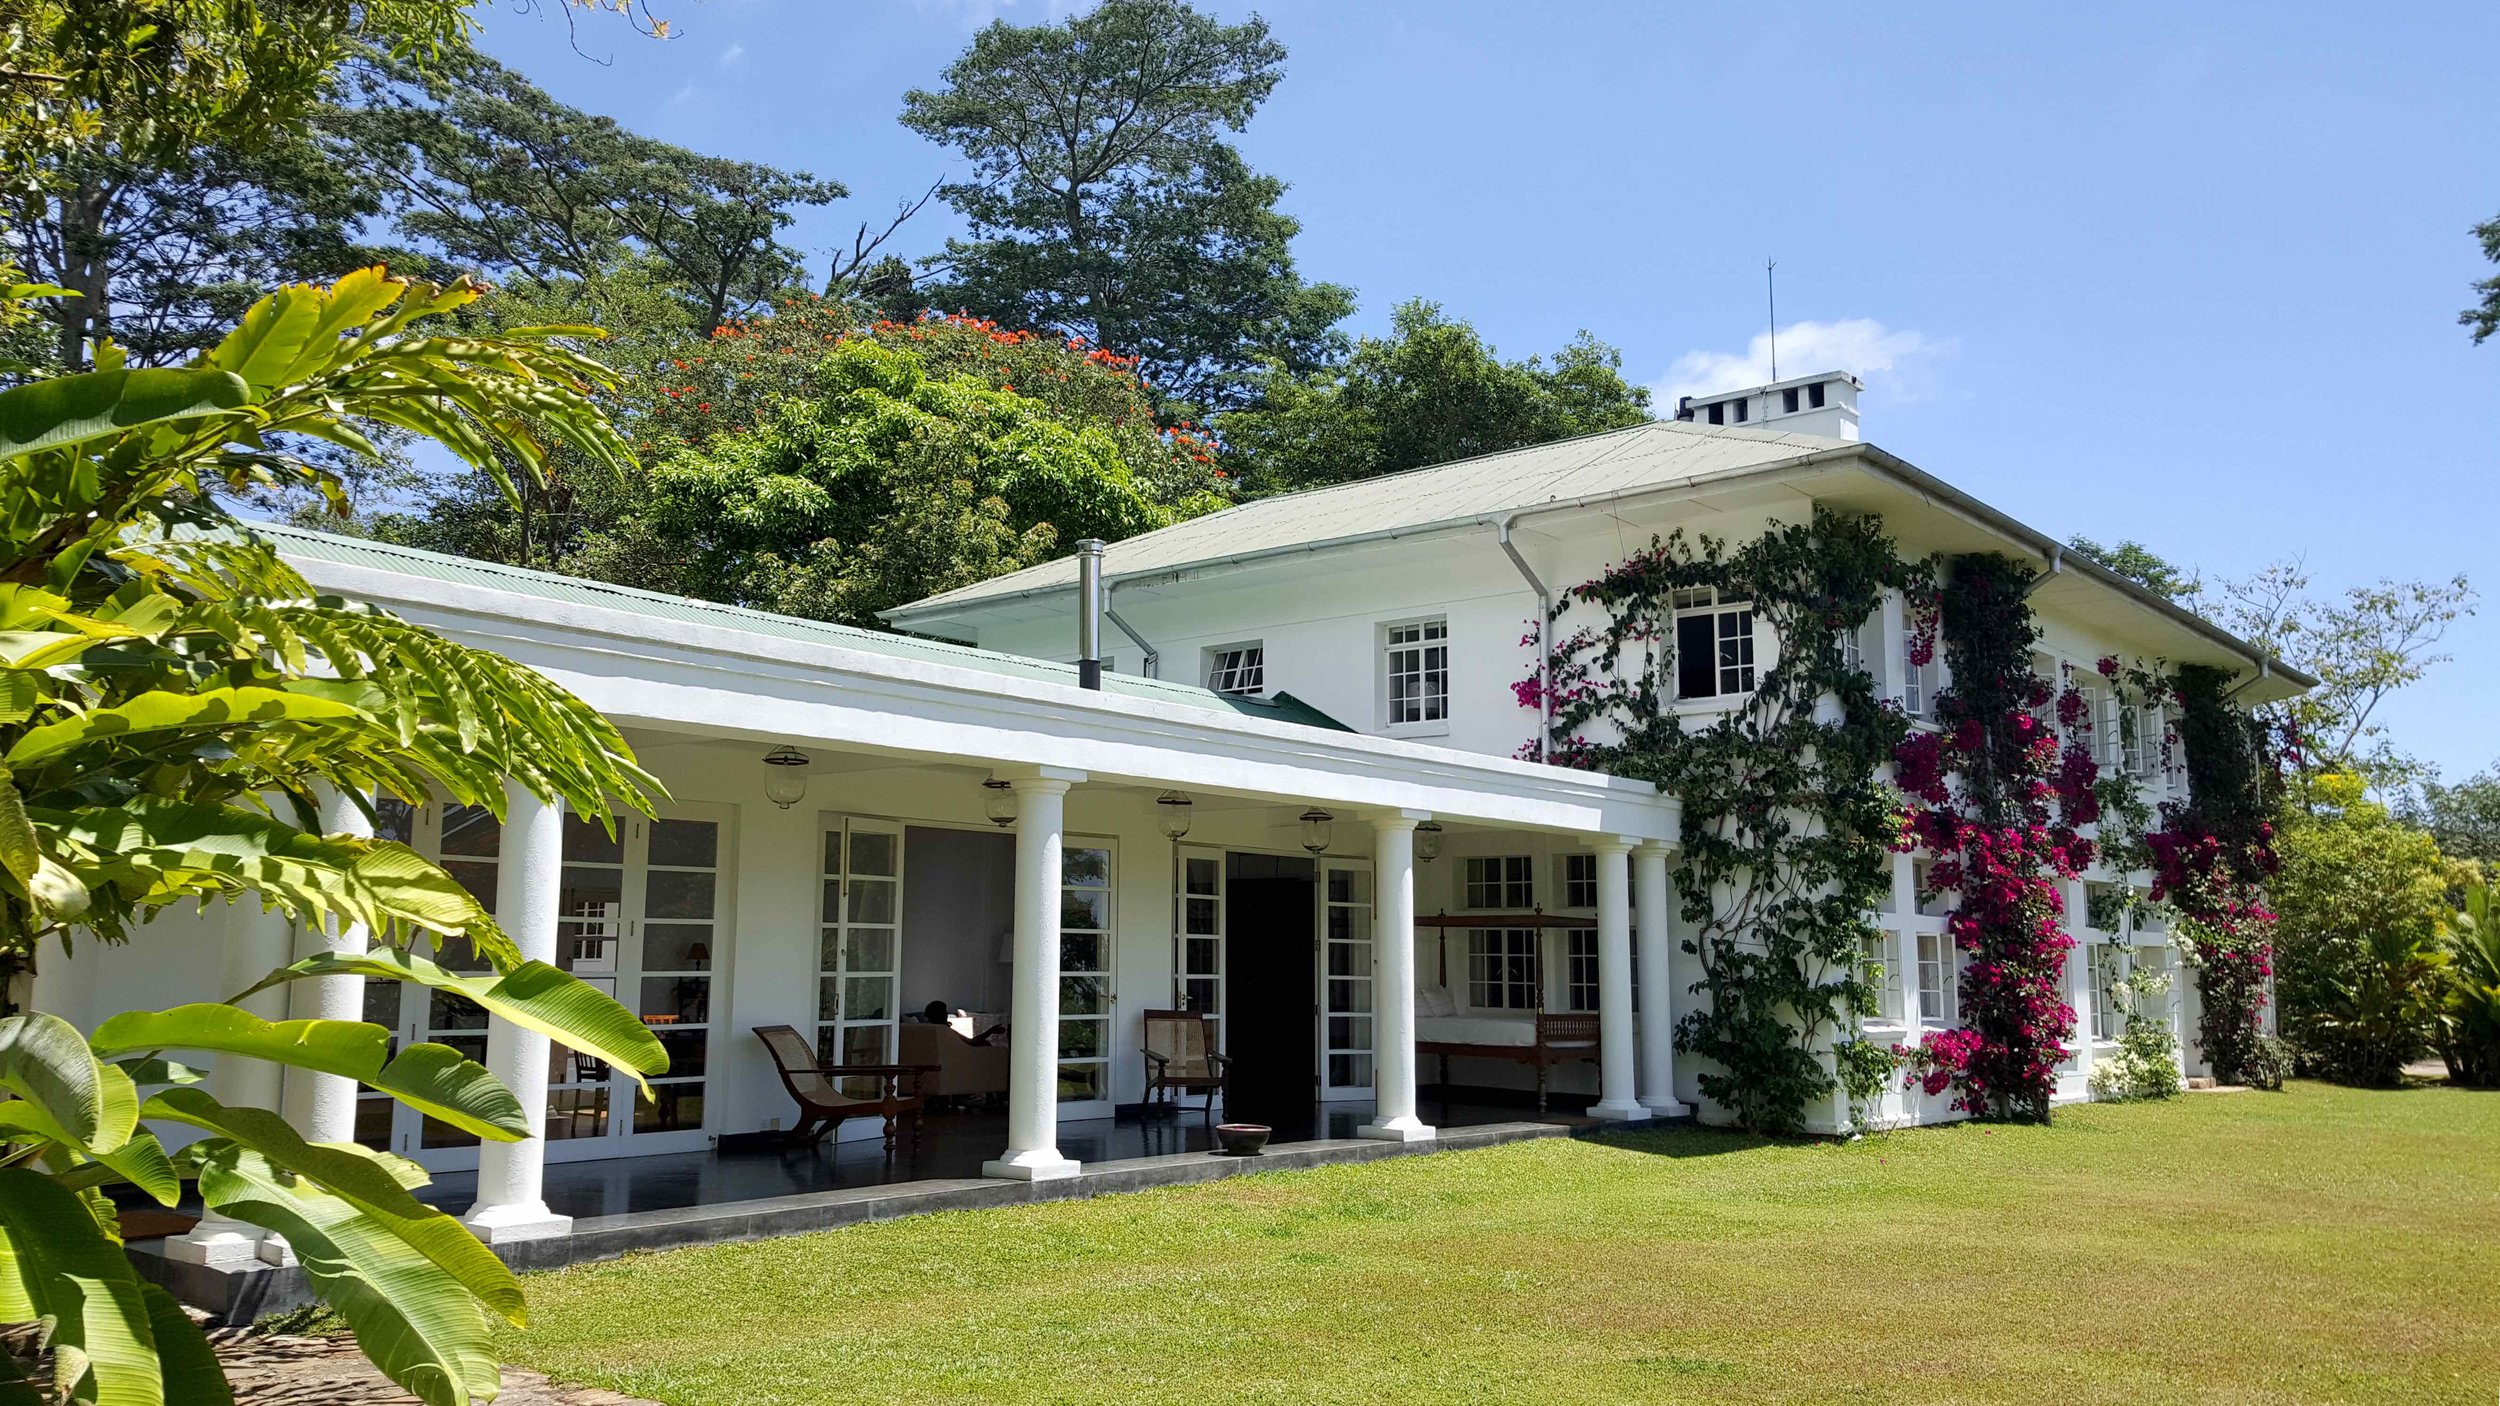 The planters house - Probably Sri Lanka's most remote and beautiful tea estate 'bungalow'